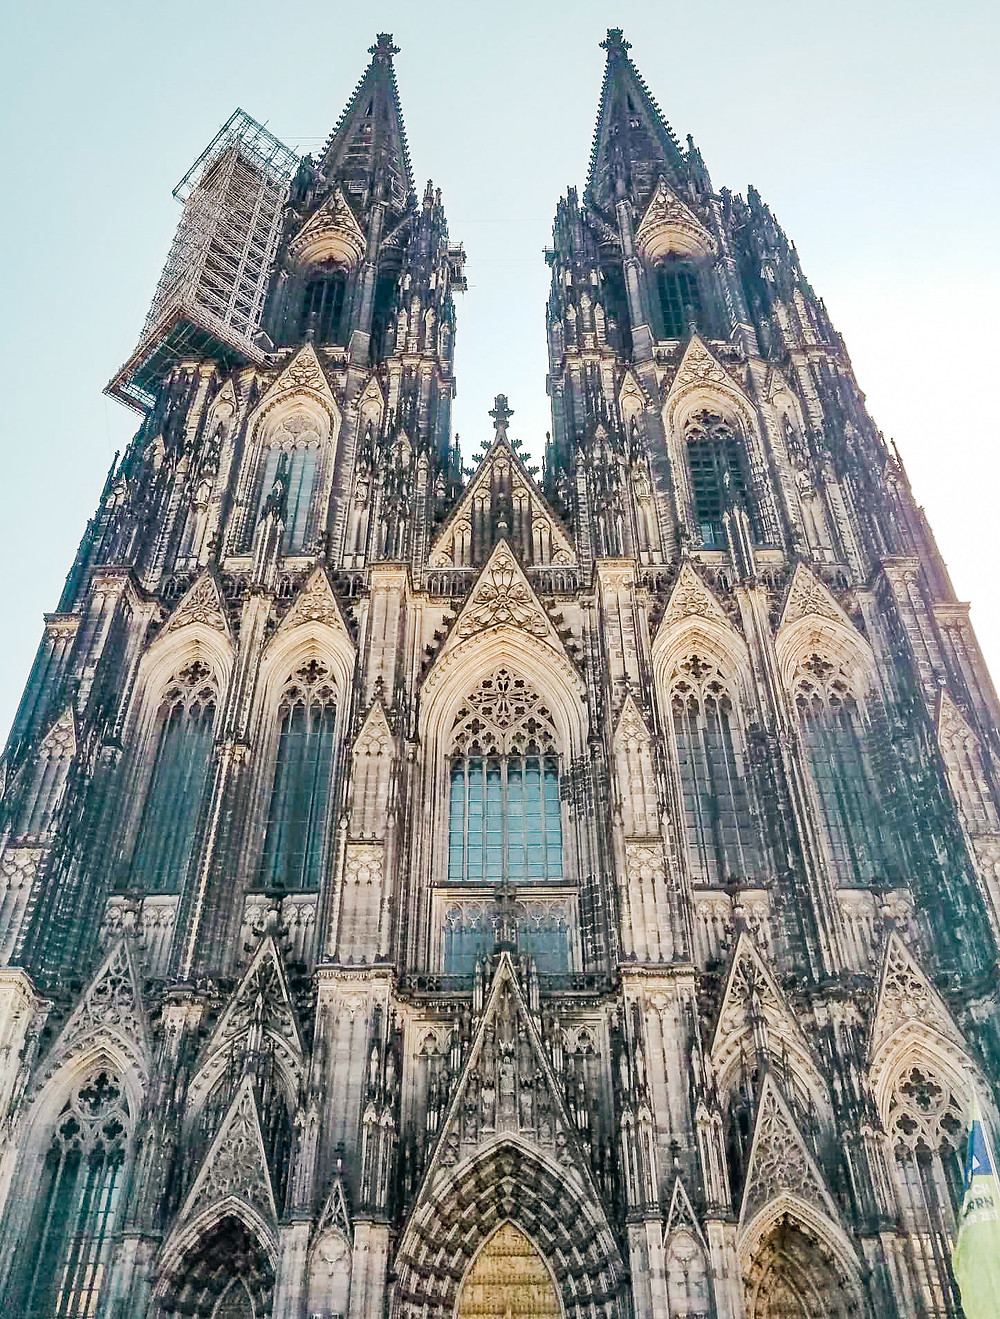 The Cologne Cathedral in Cologne, Germany